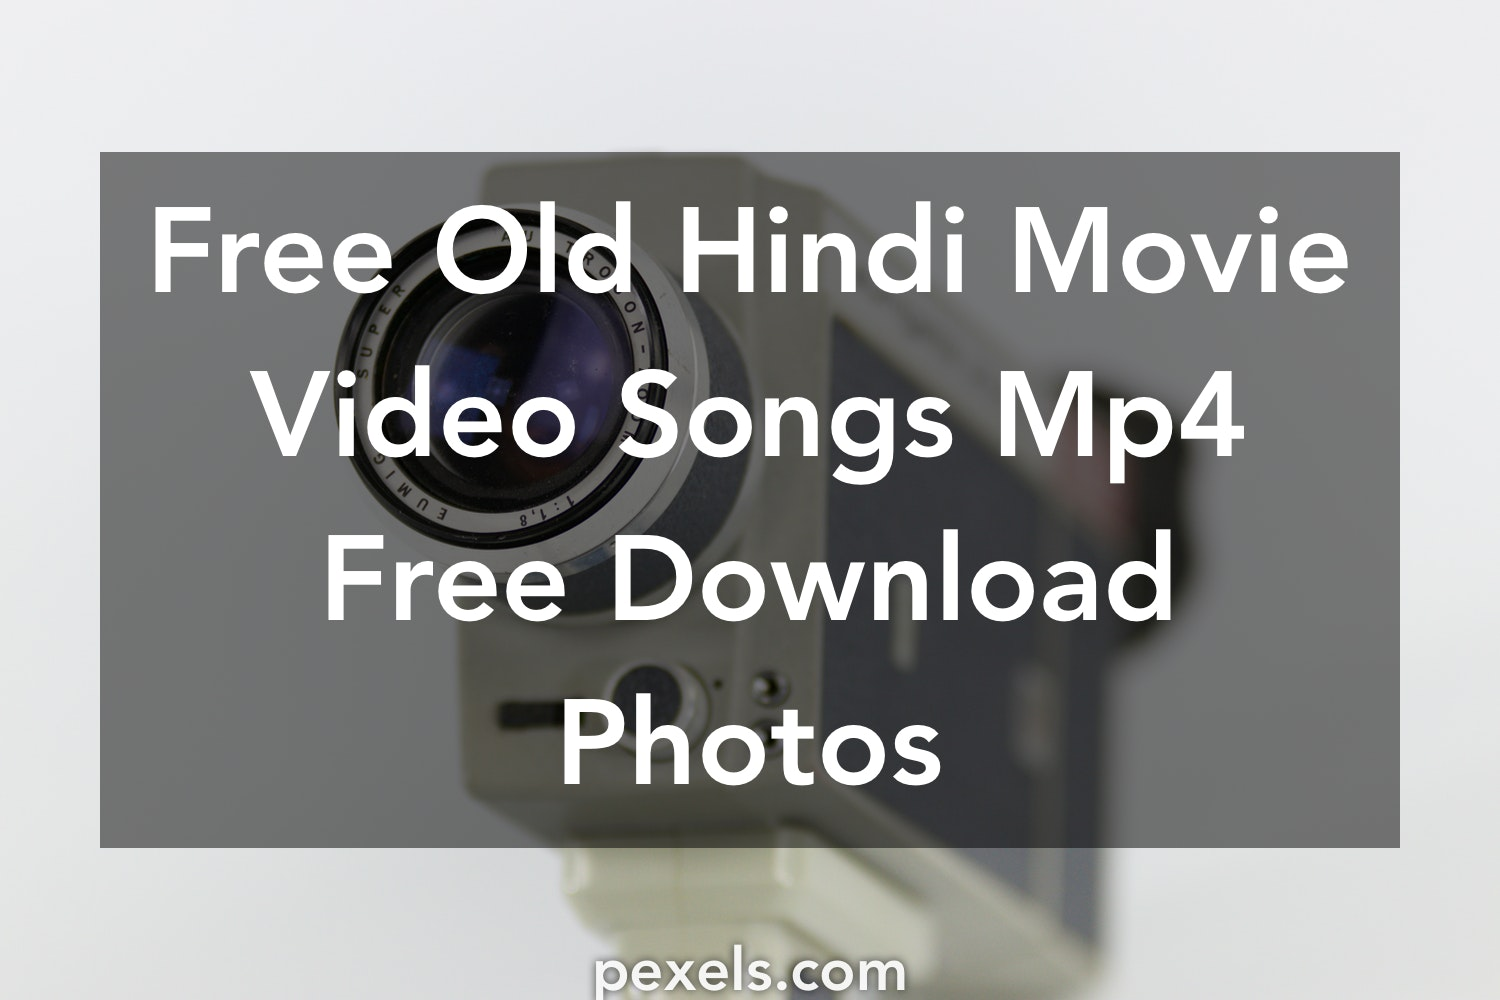 1000+ Engaging Old Hindi Movie Video Songs Mp4 Free Download